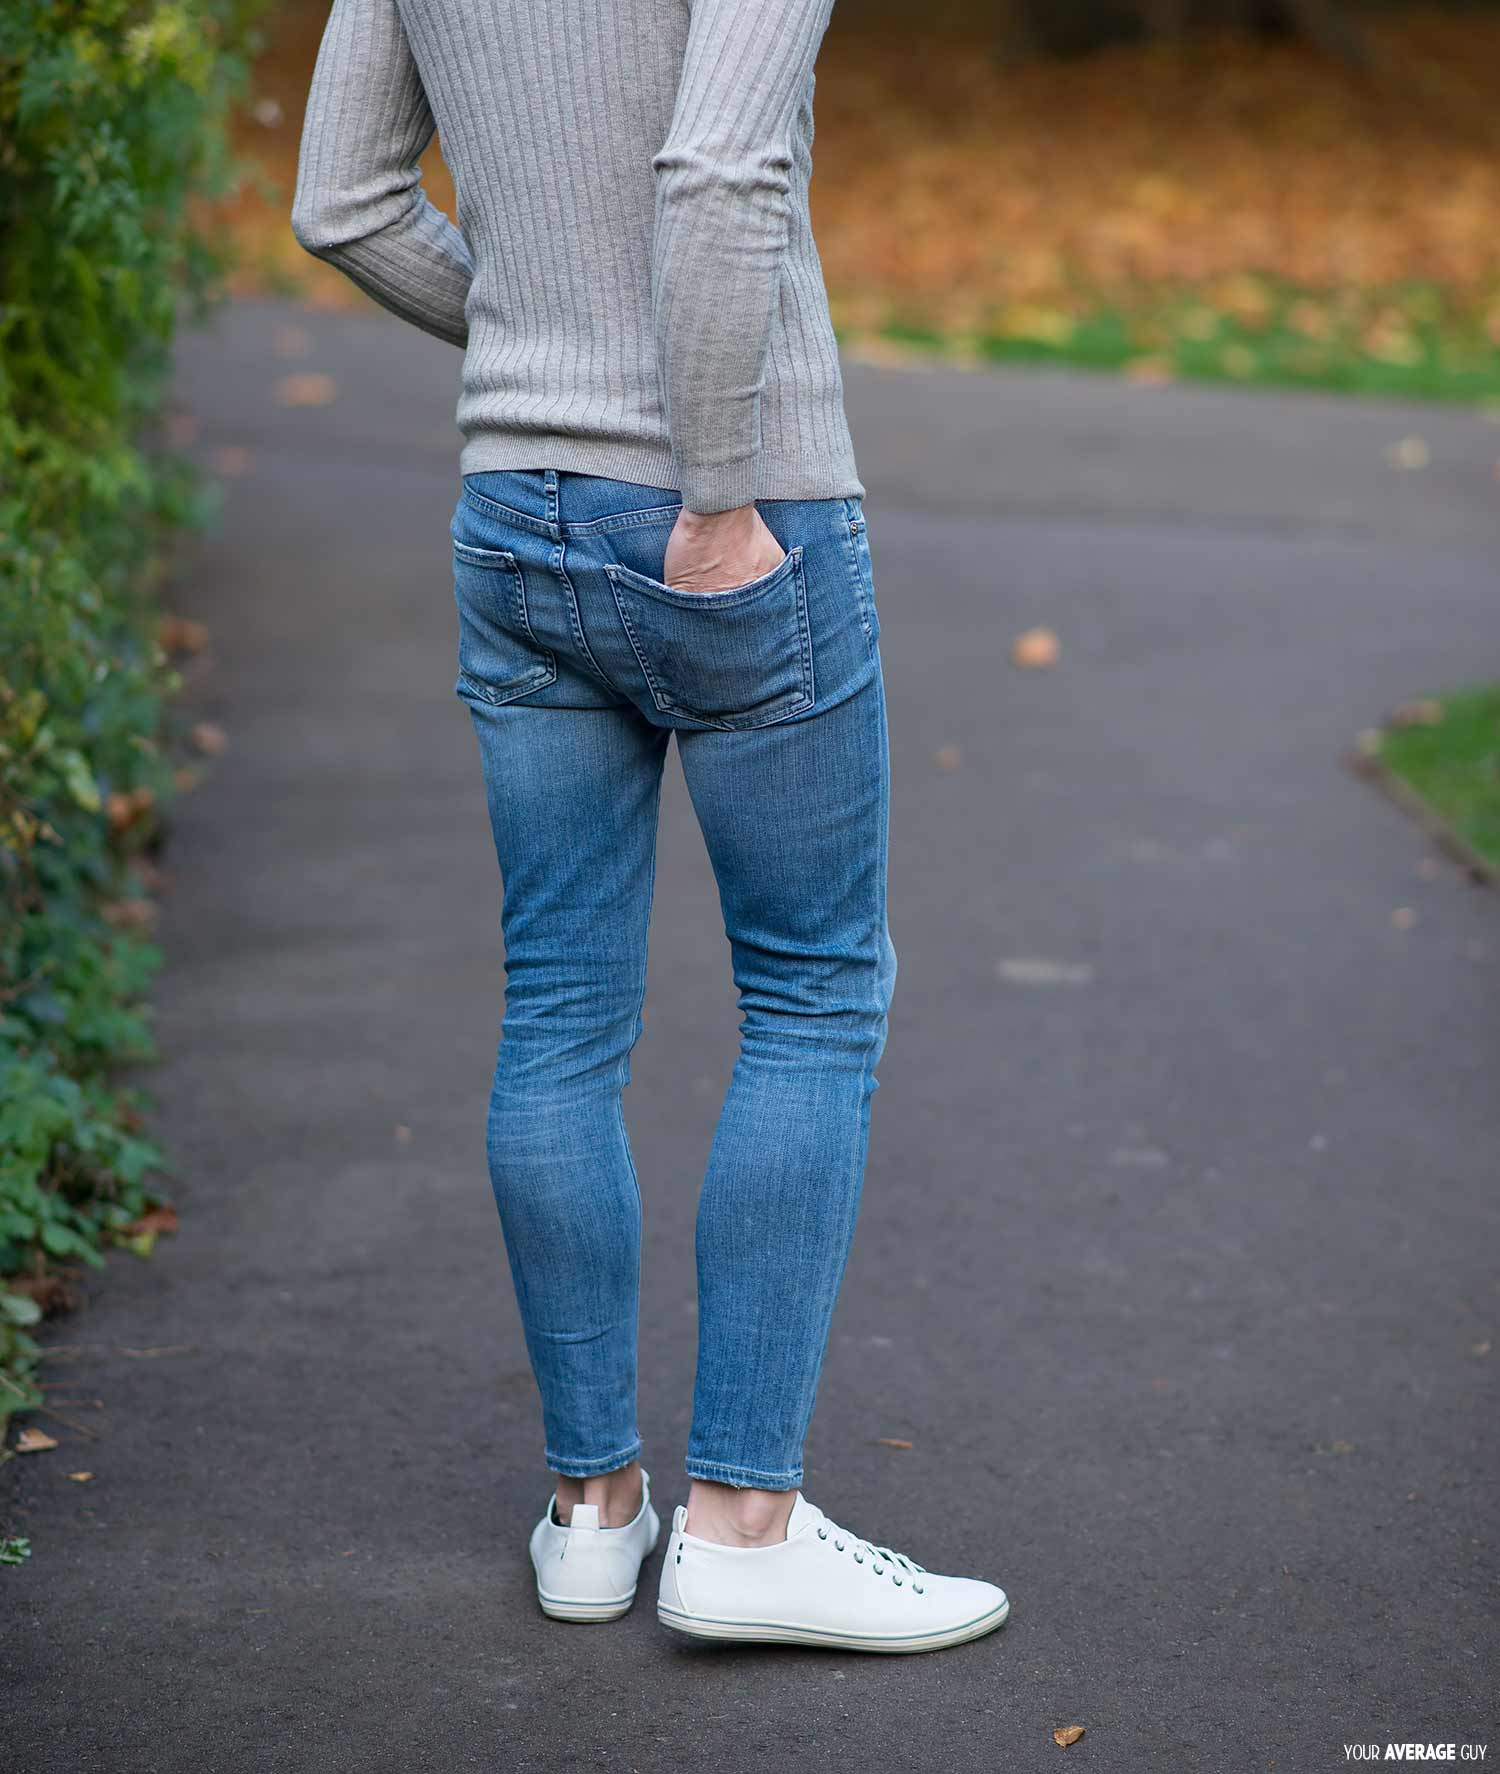 womens-skinny-jeans-on-a-man-tight